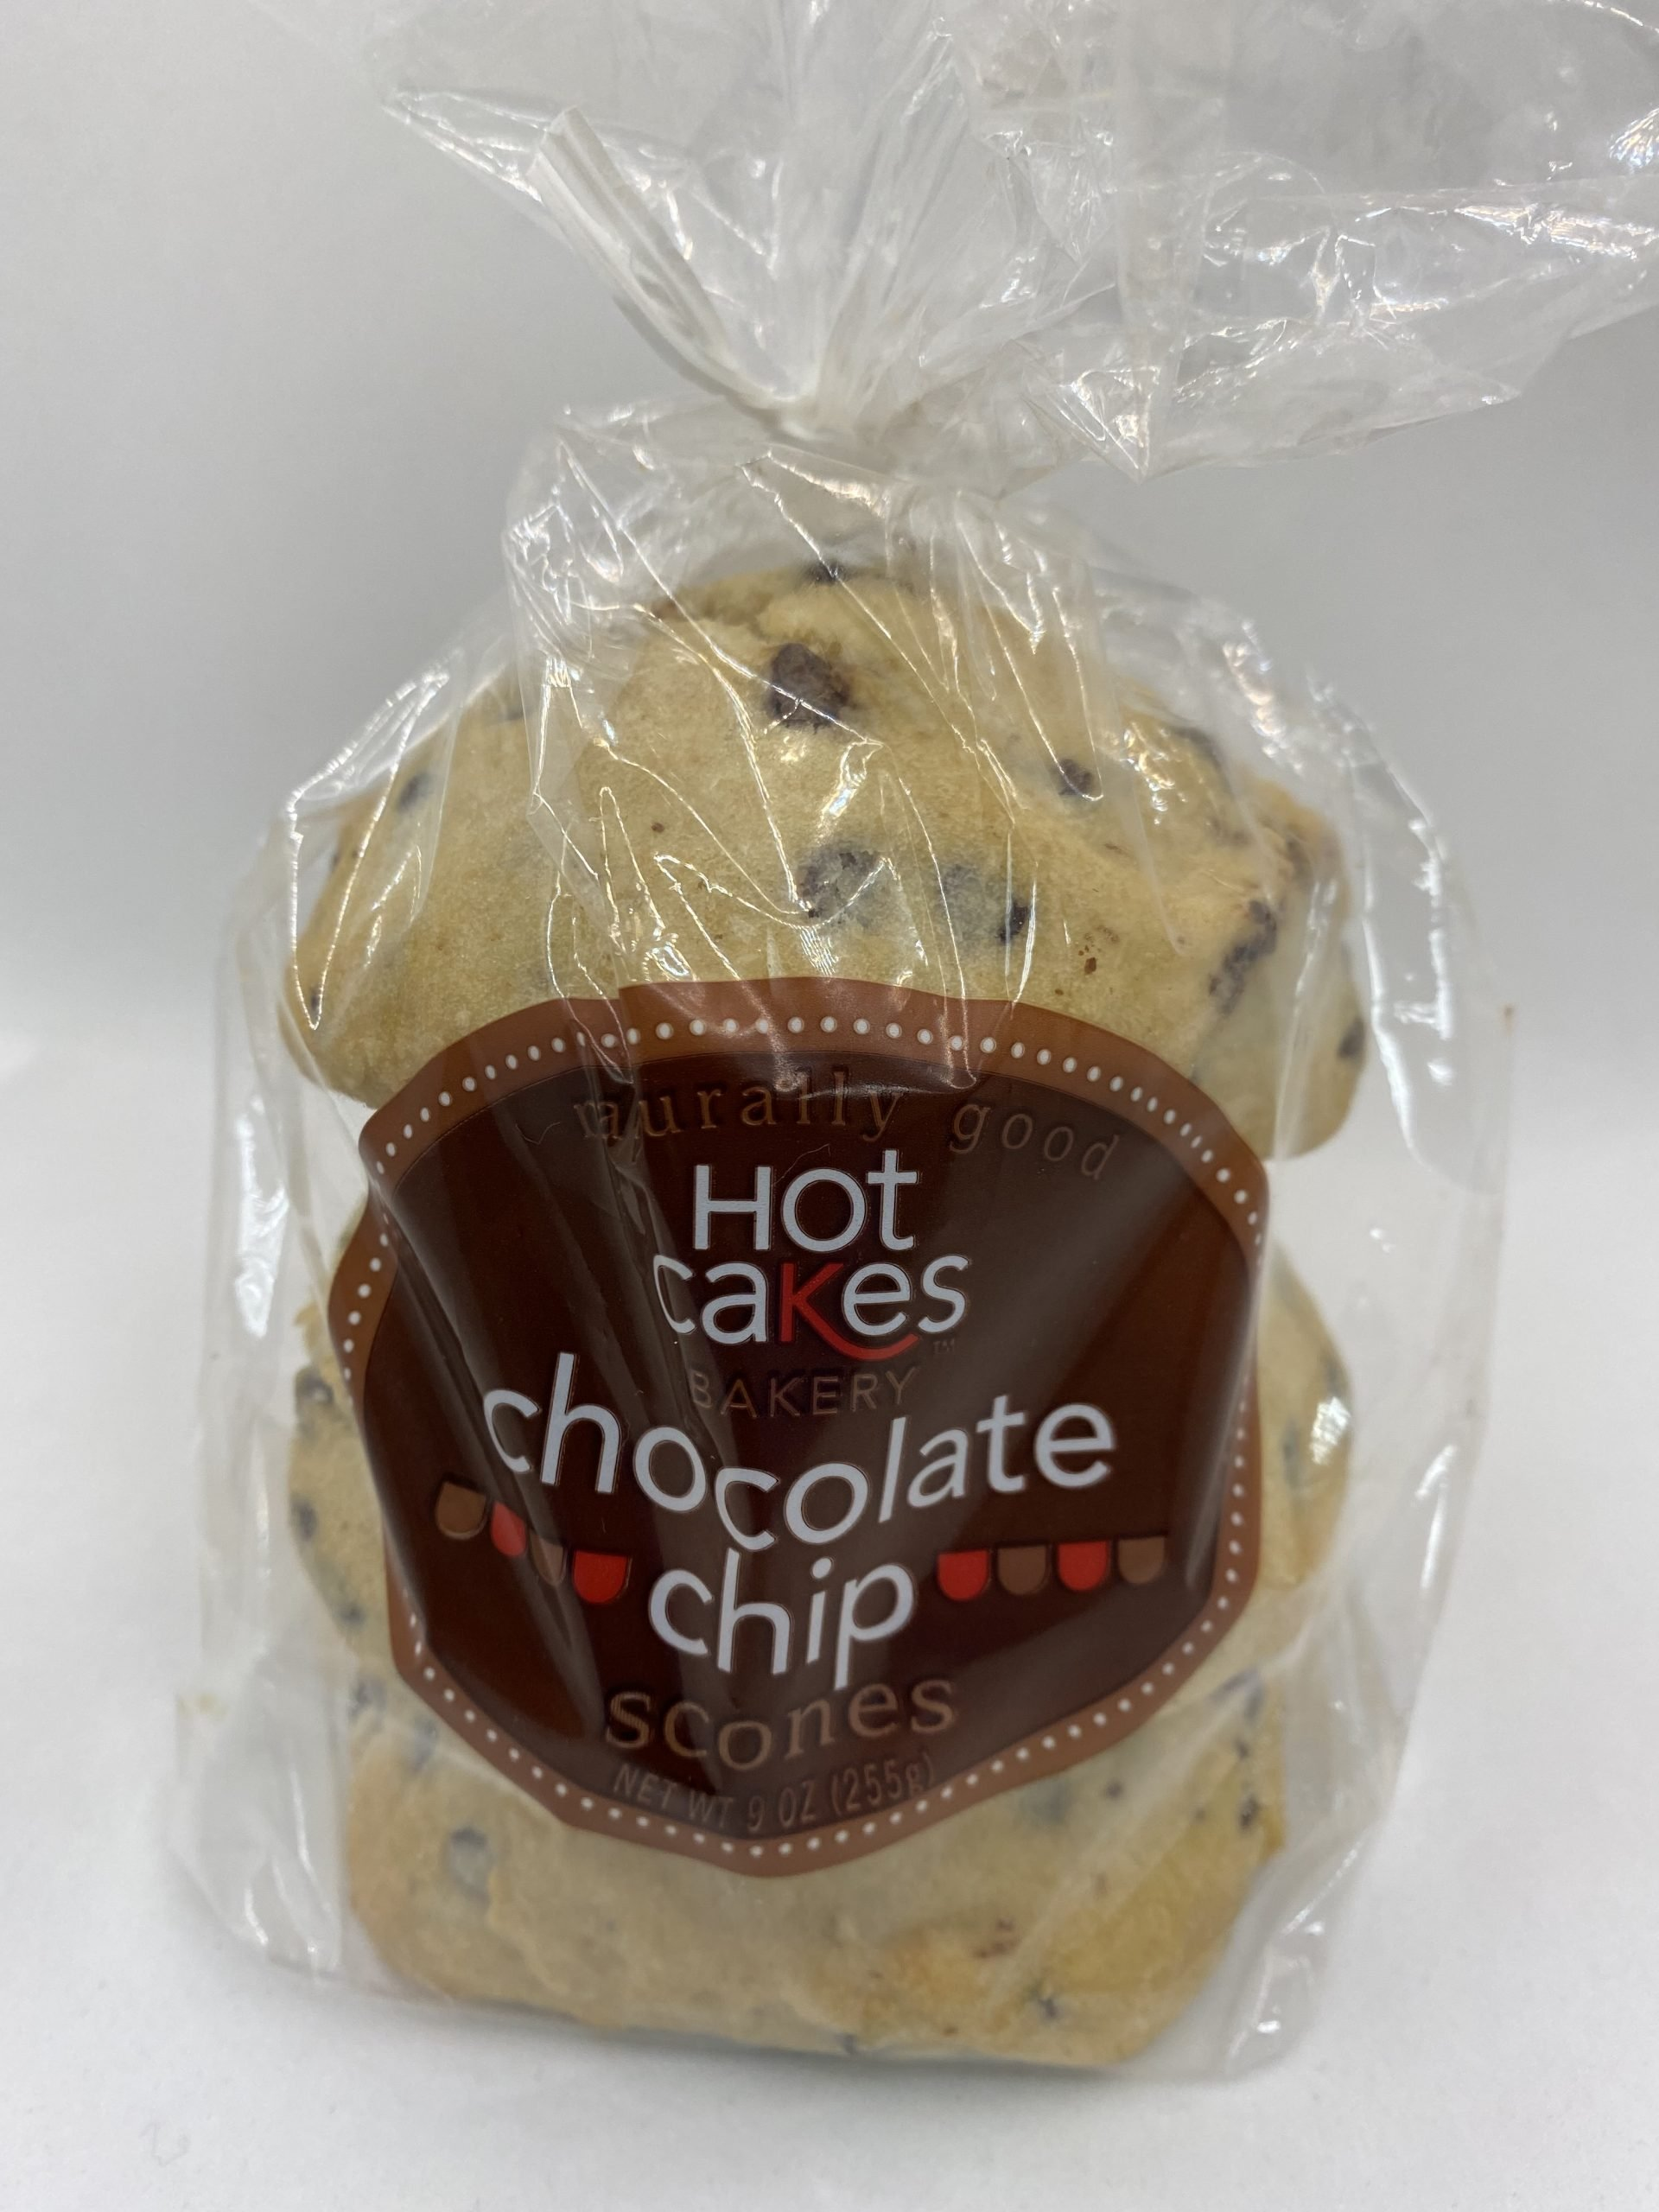 Hot Cakes Bakery - Chocolate Chip Scones Packaged